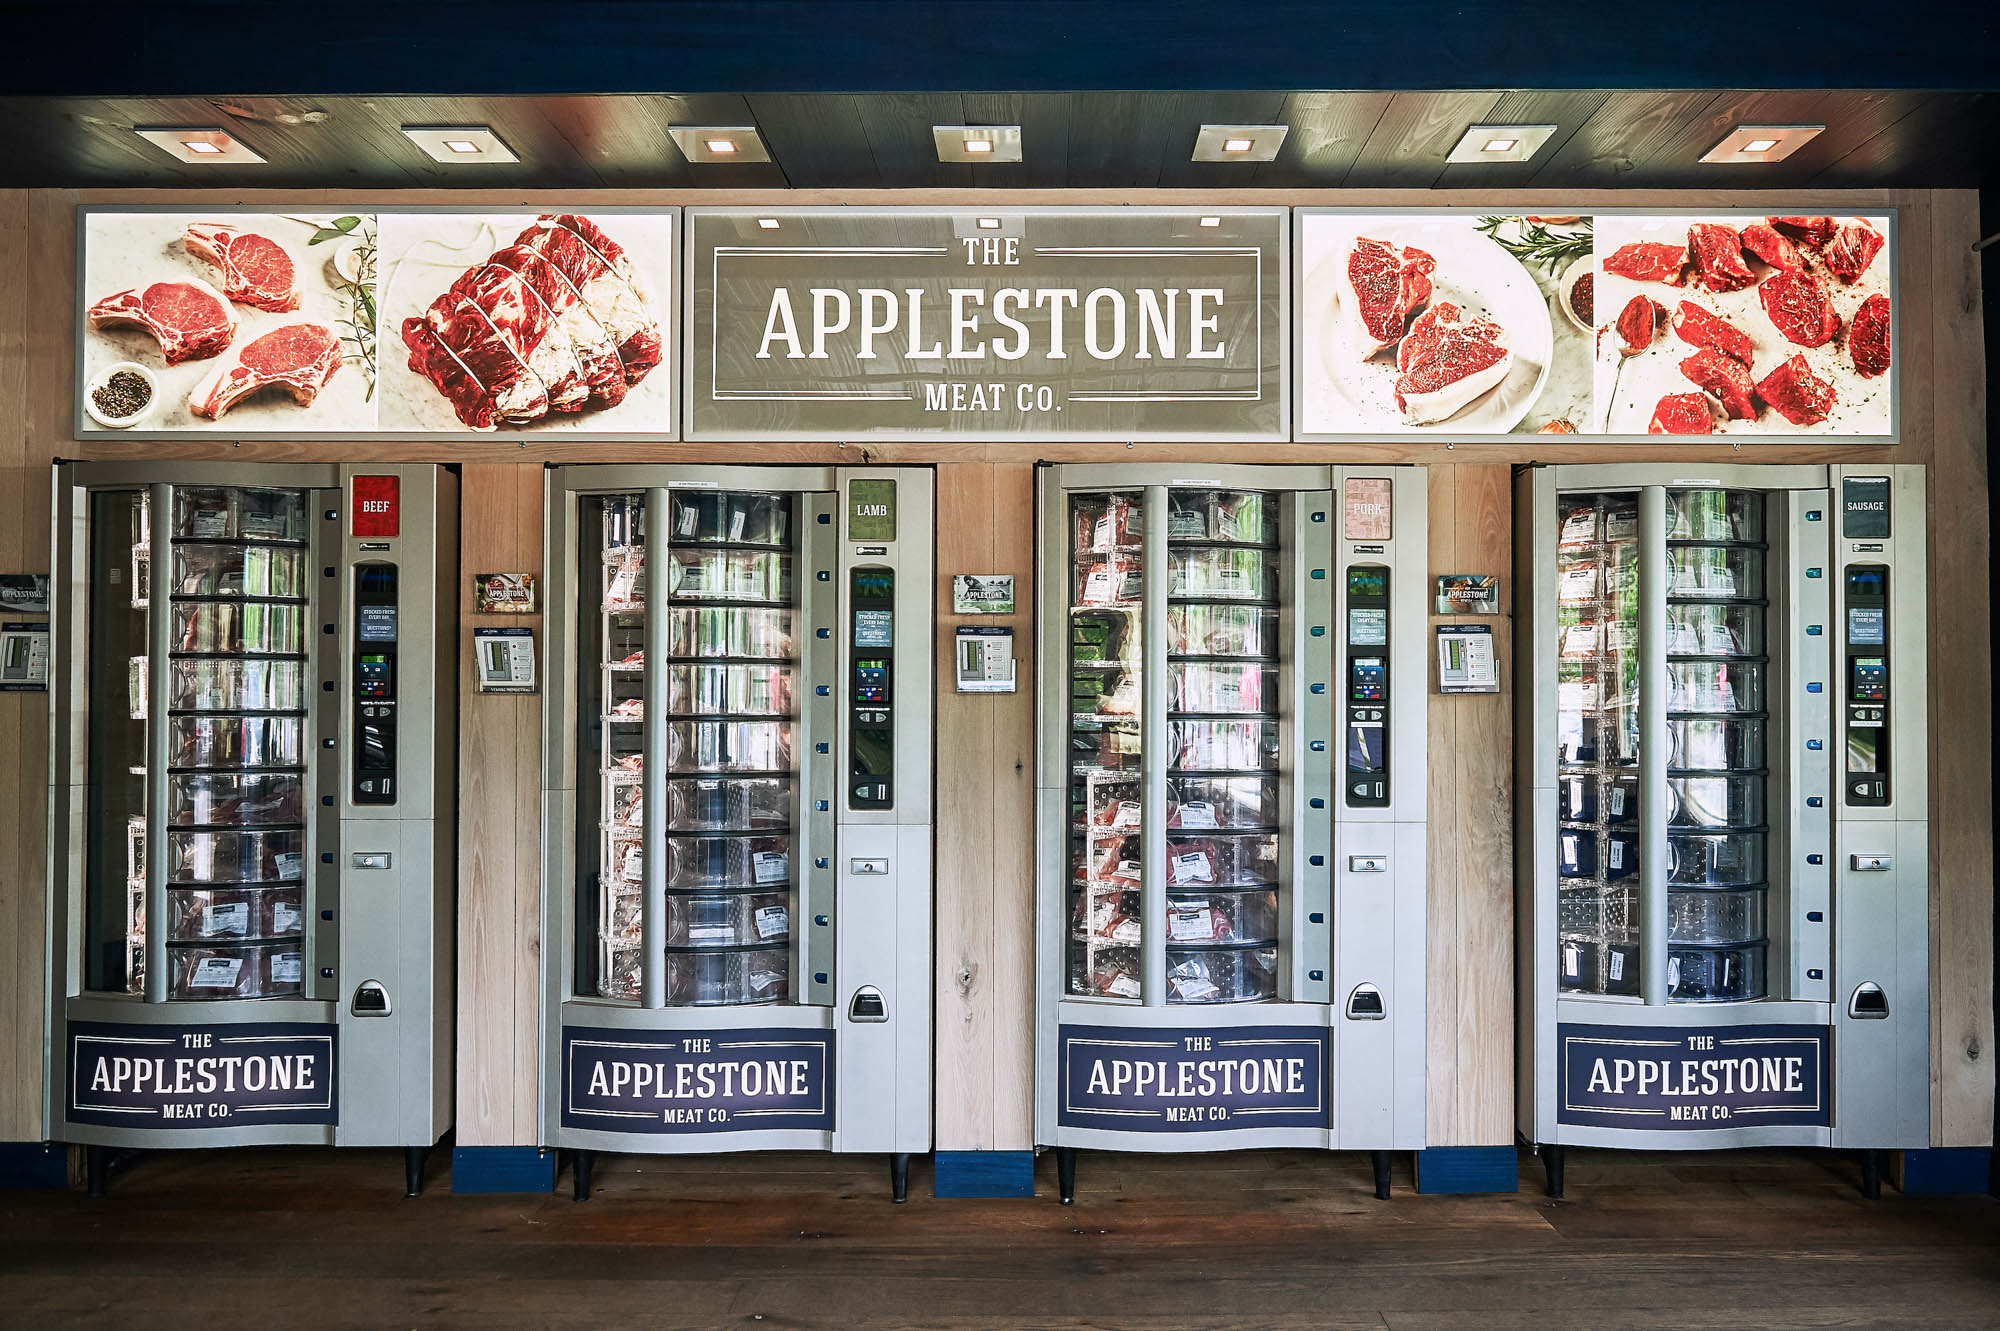 Applestone Meat Co. vending machines